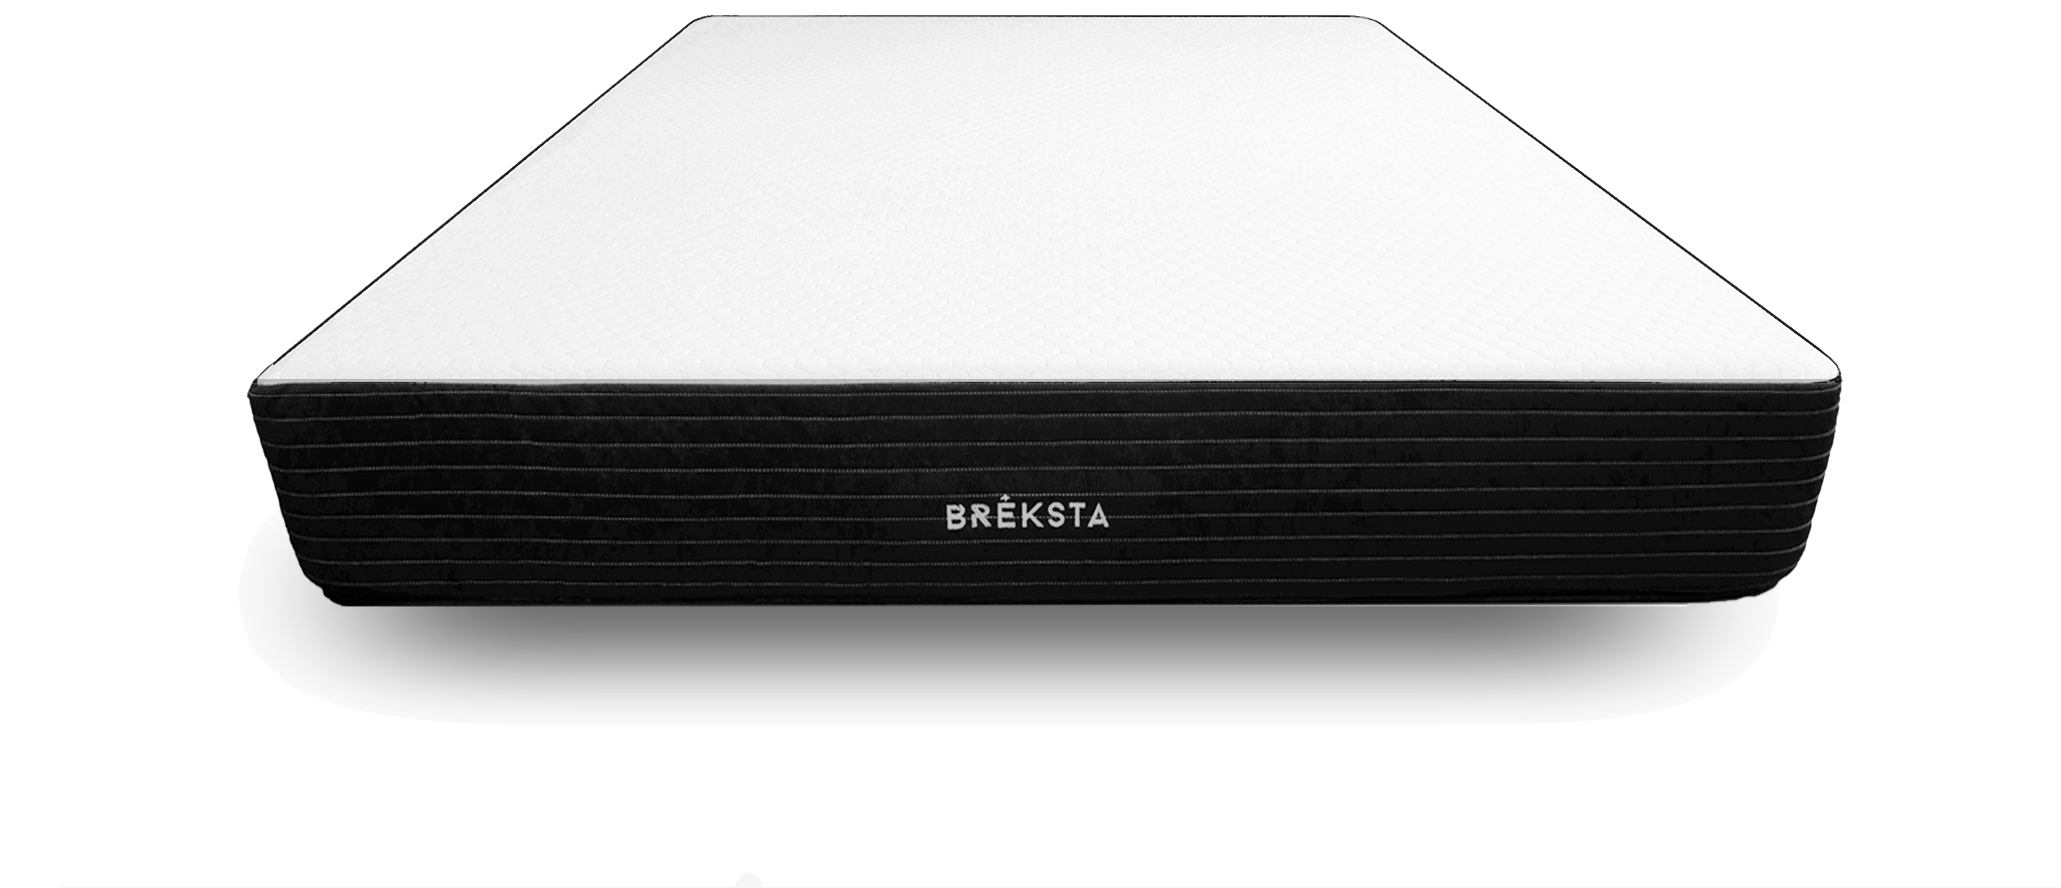 Breksta Calypso Mattress Medium Firm